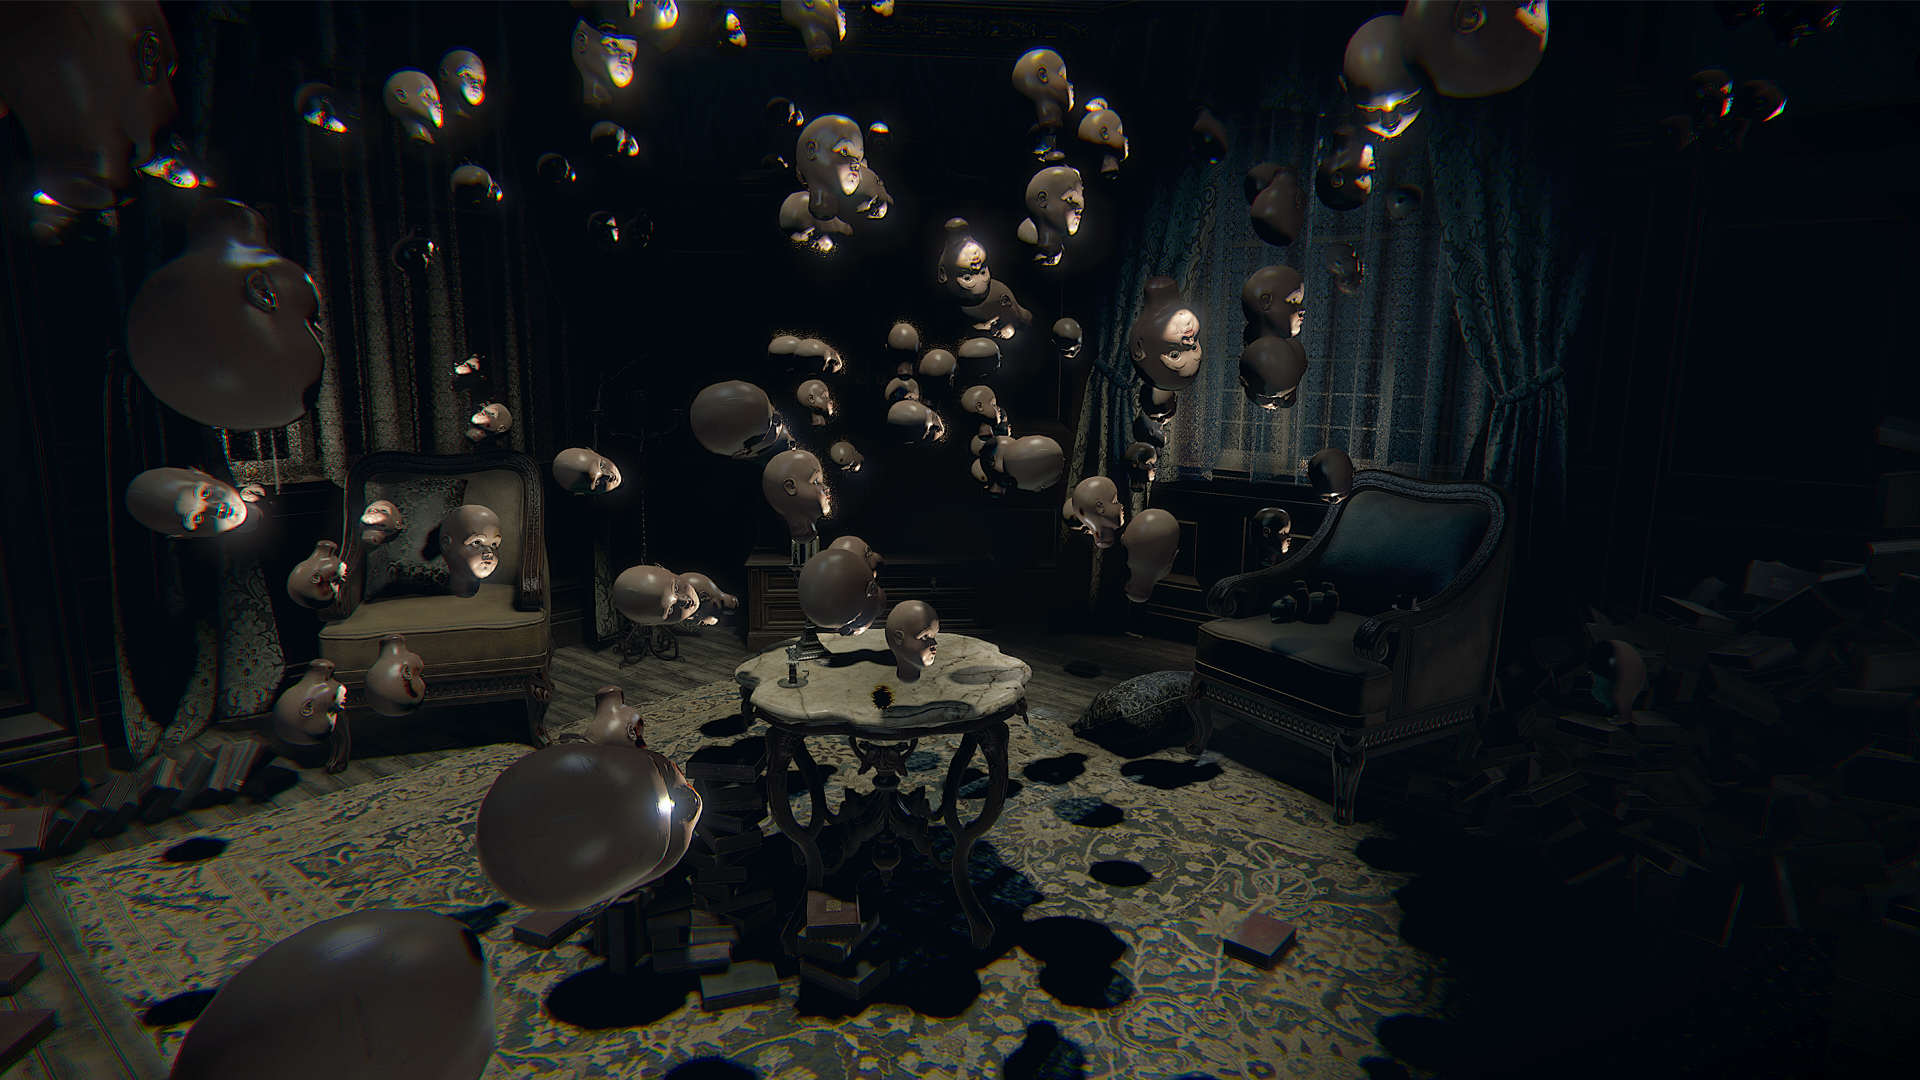 Layers Of Fear Is Isolating, Tense And Unashamedly Terrifying pu28dd2c7955ce926456240b2ff0100bde 1446046464 1349759 screenshot original